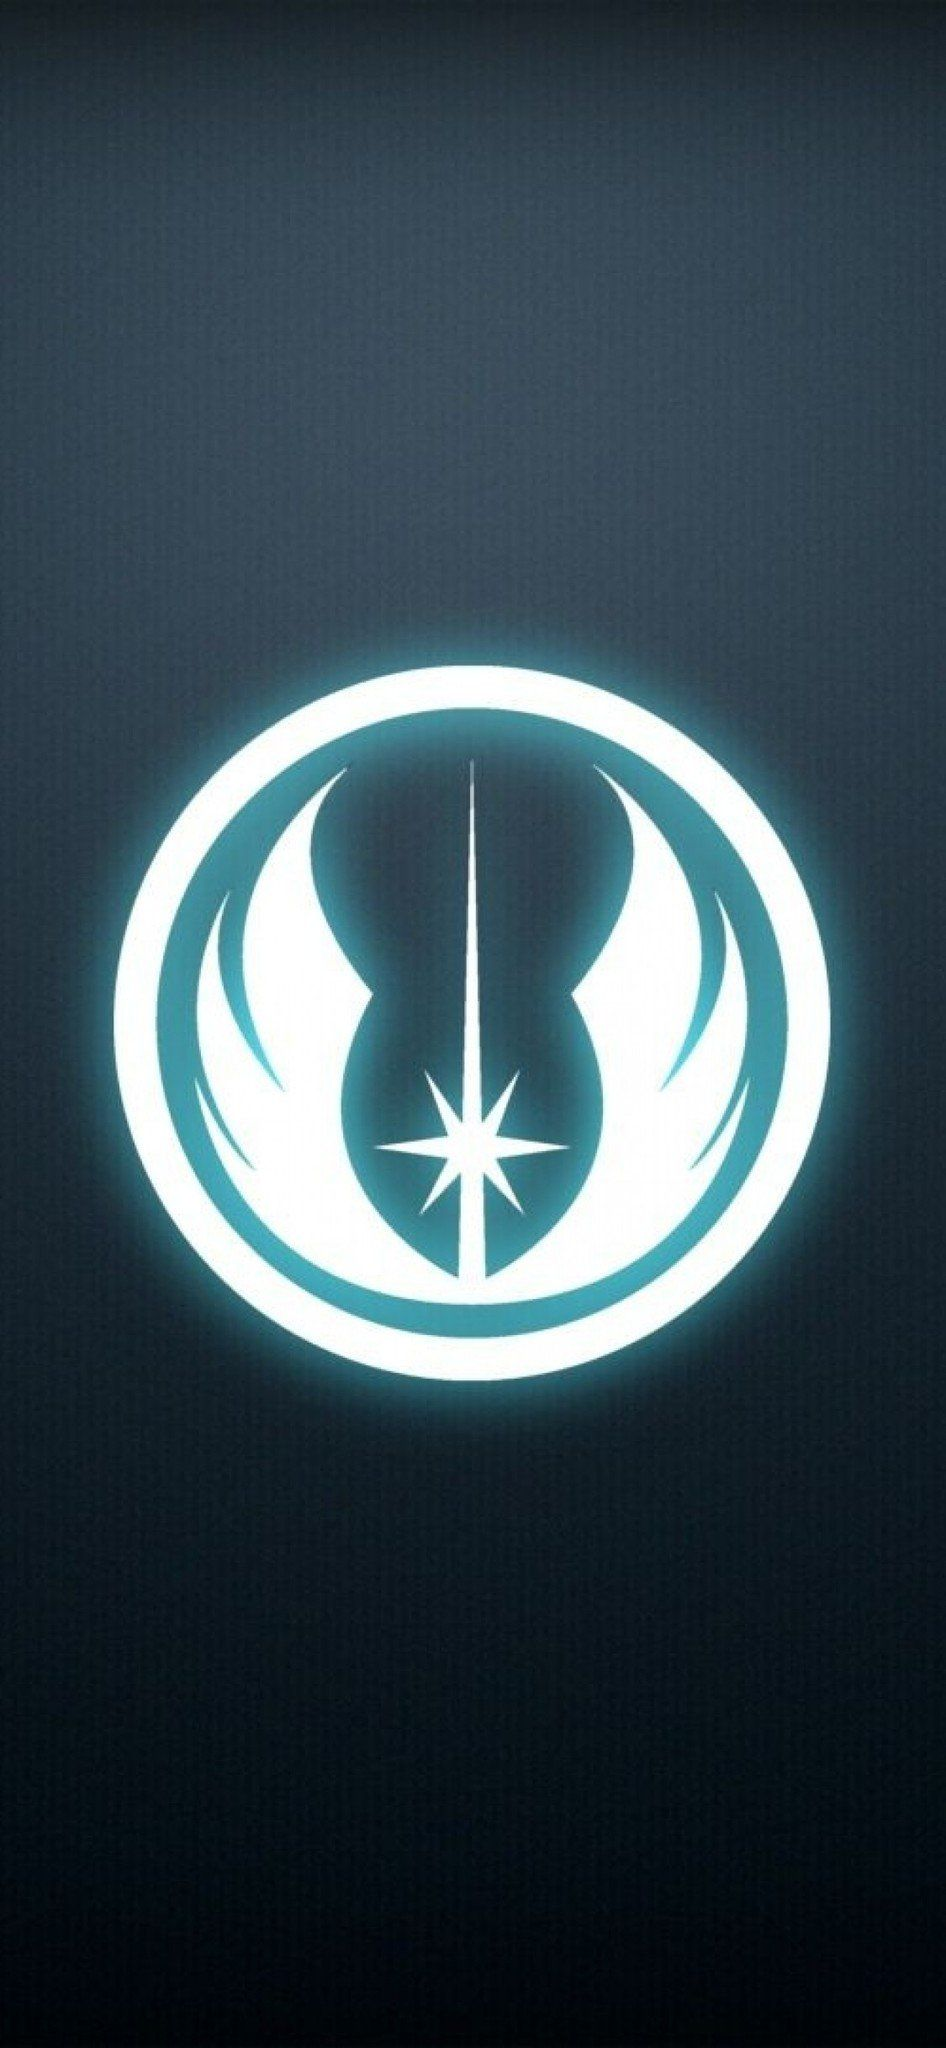 946x2048 Best Wallpapers to Celebrate Star Wars Day in 2019 | iMore